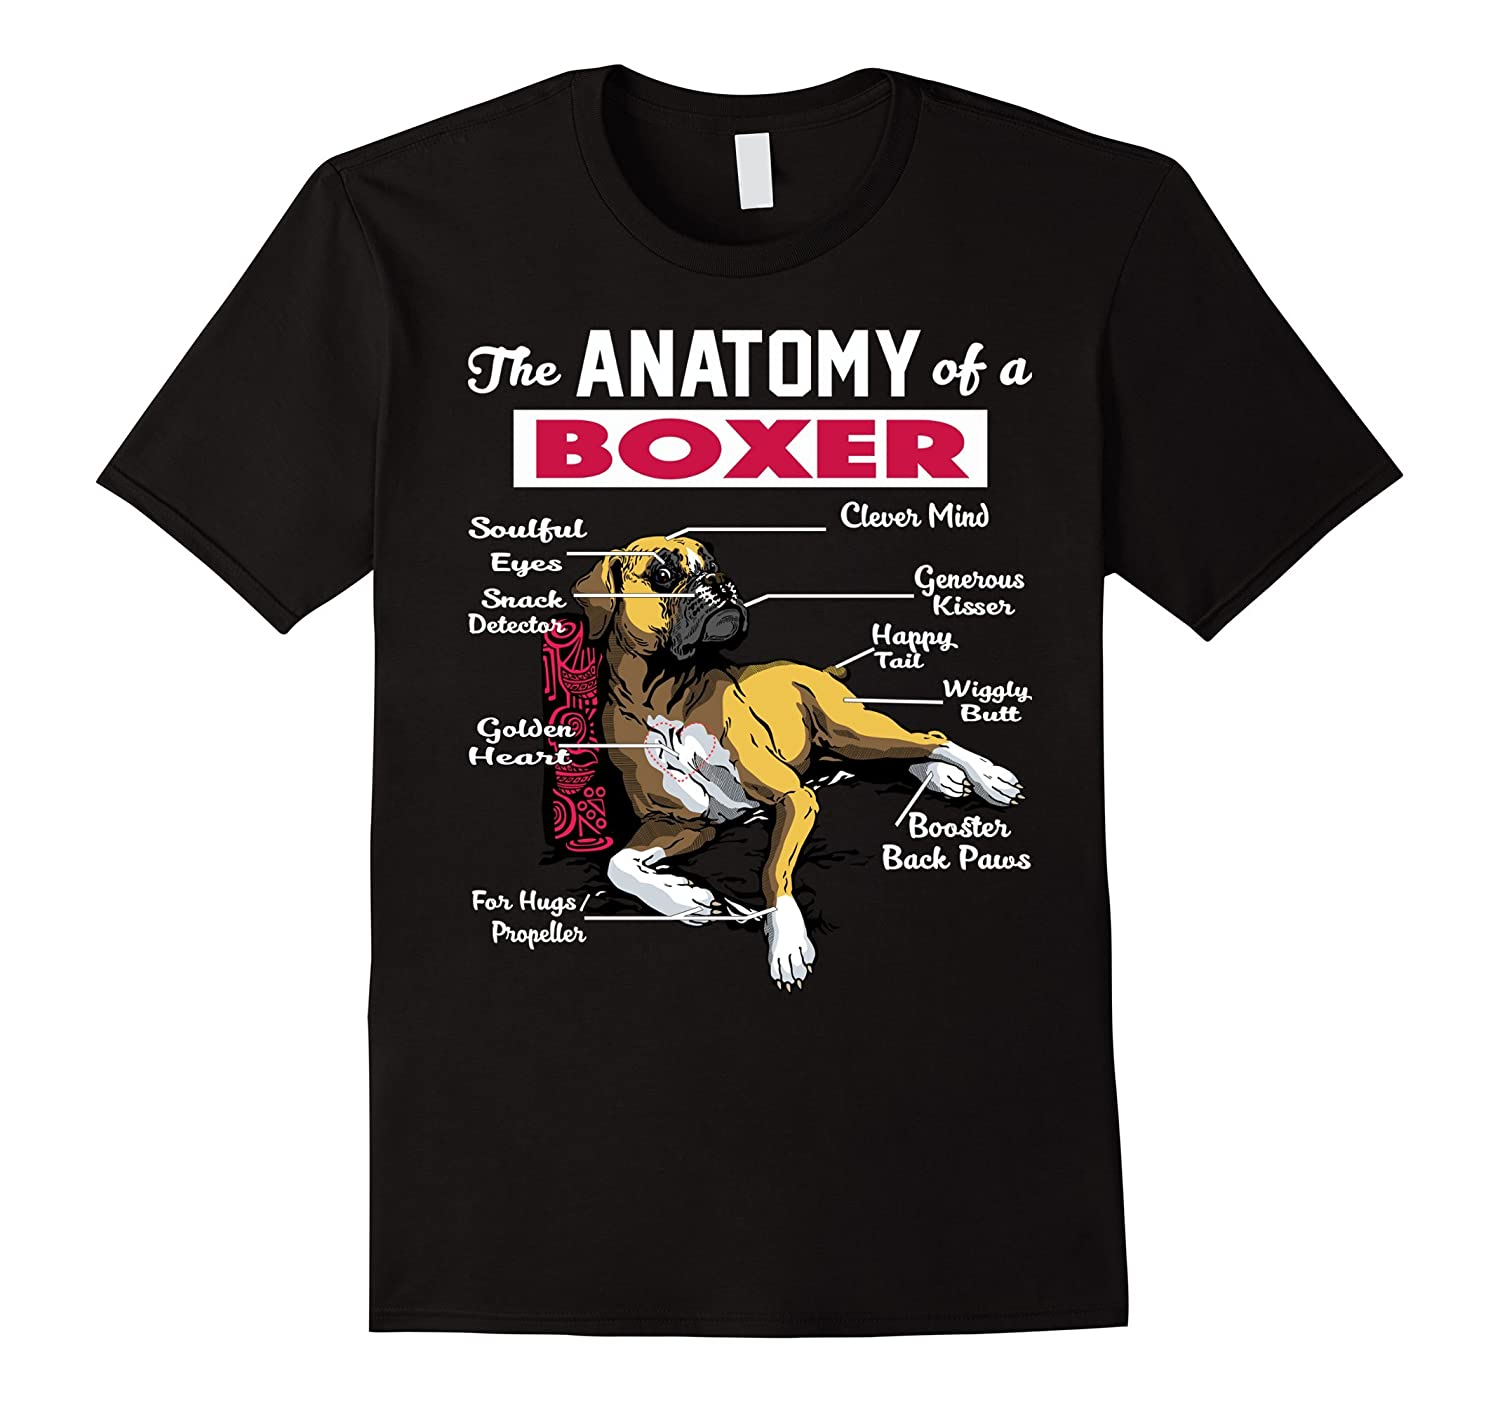 Anatomy of a boxer